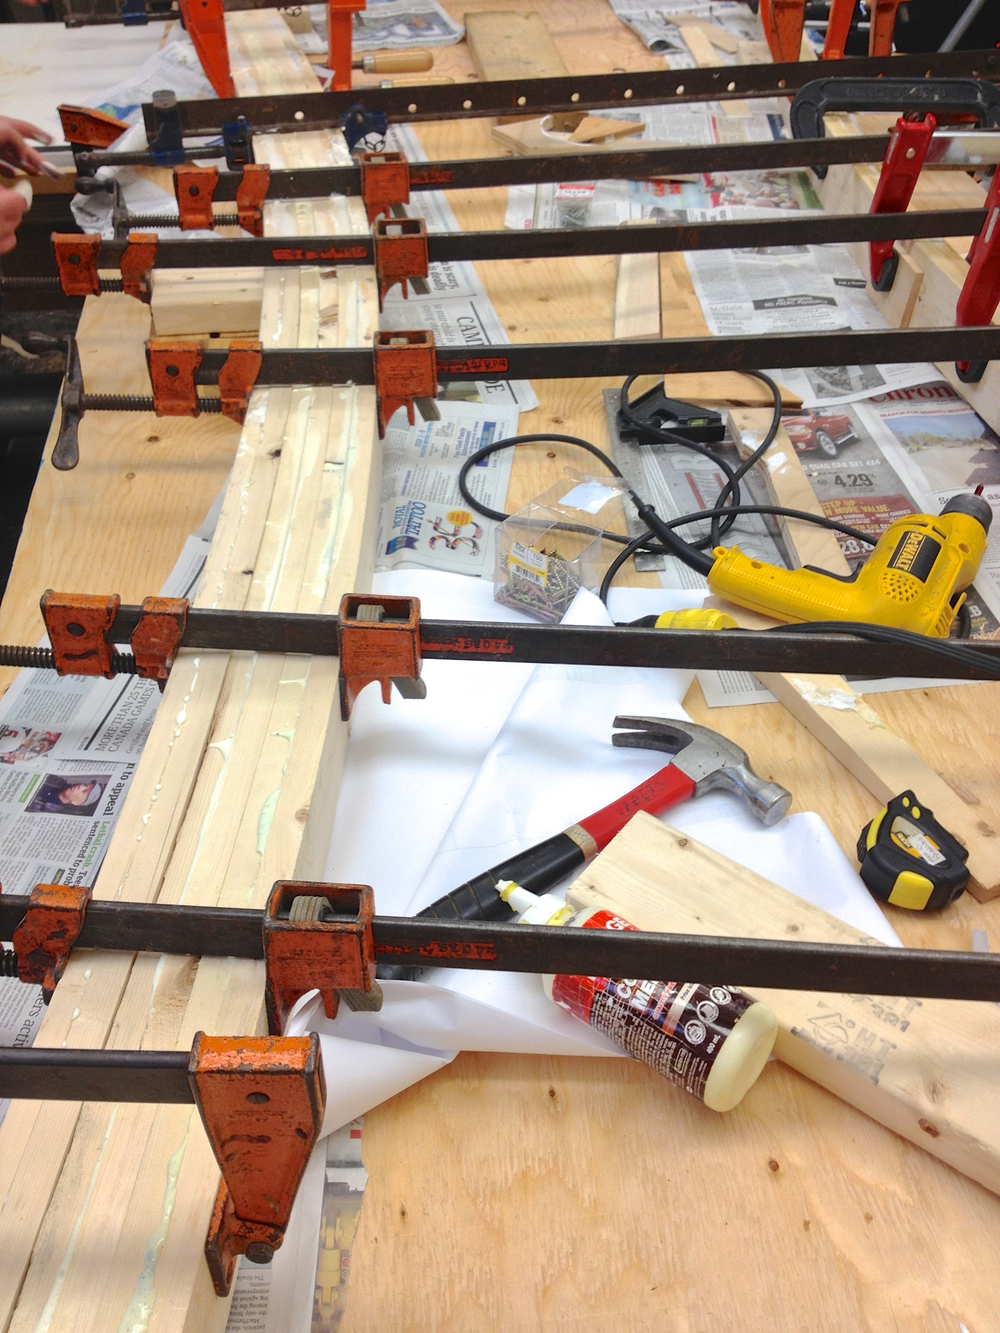 Bending and gluing the wood for the curved truss